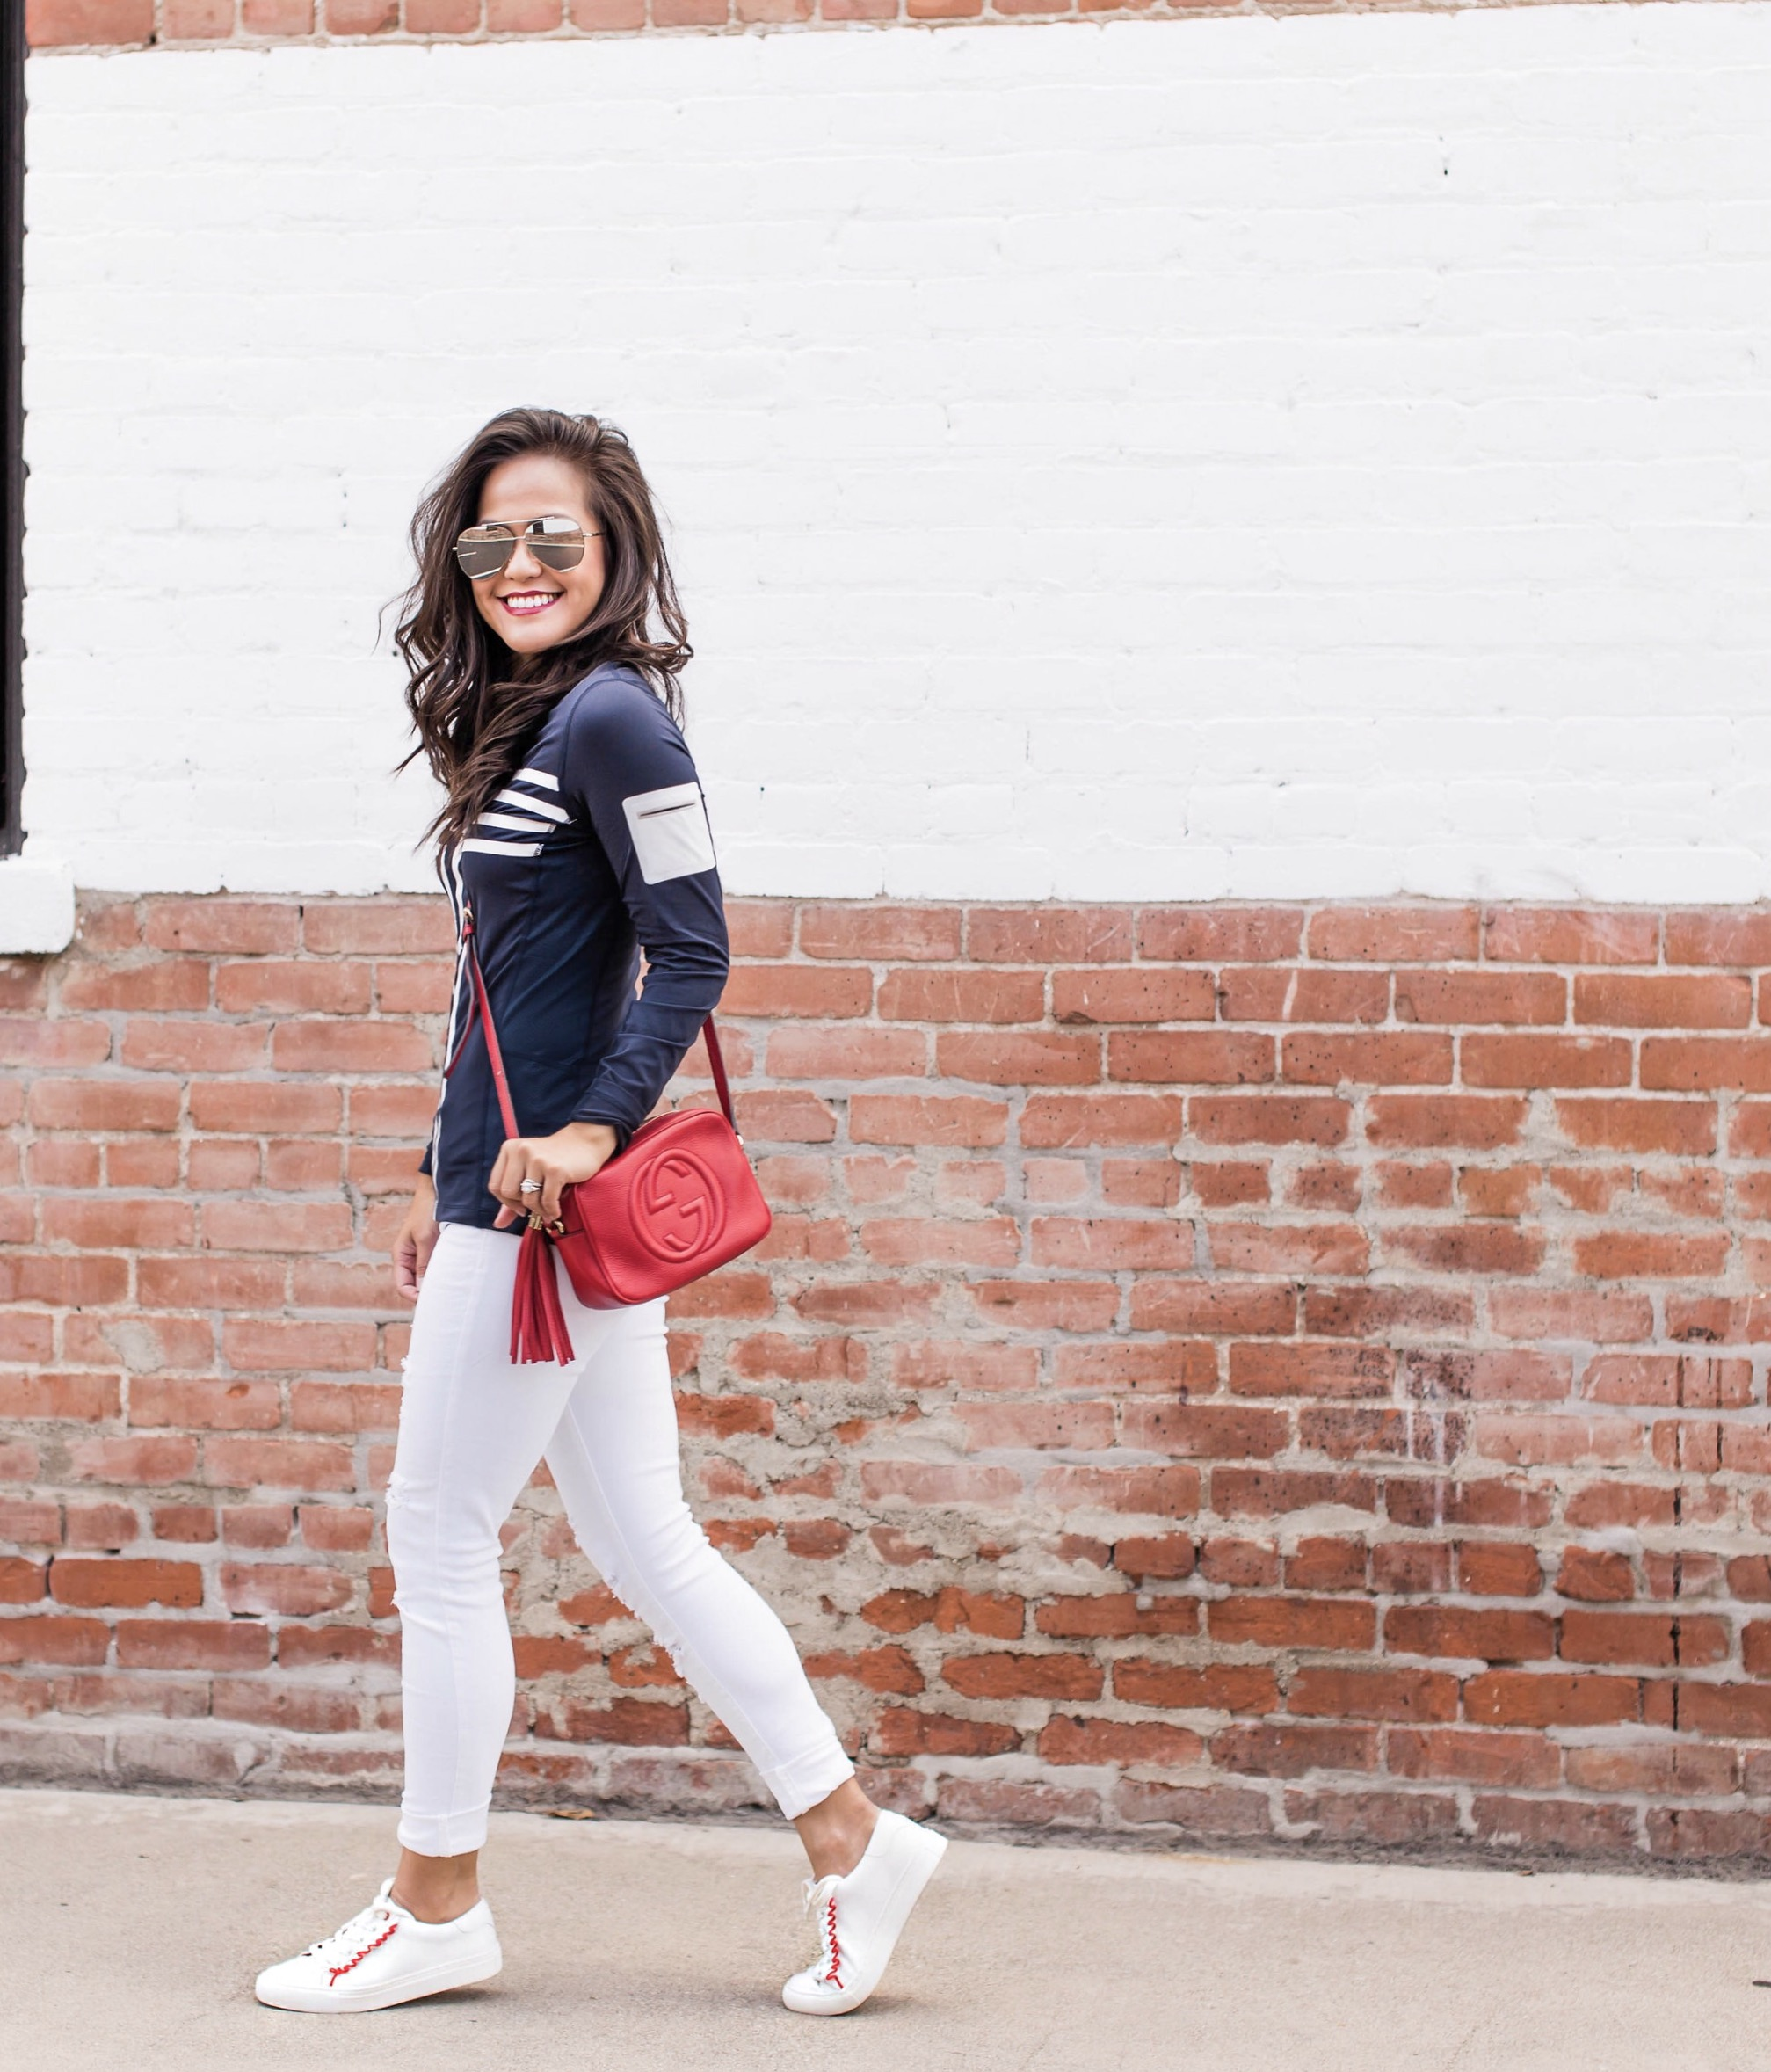 My 5 rules for wearing Athleisure